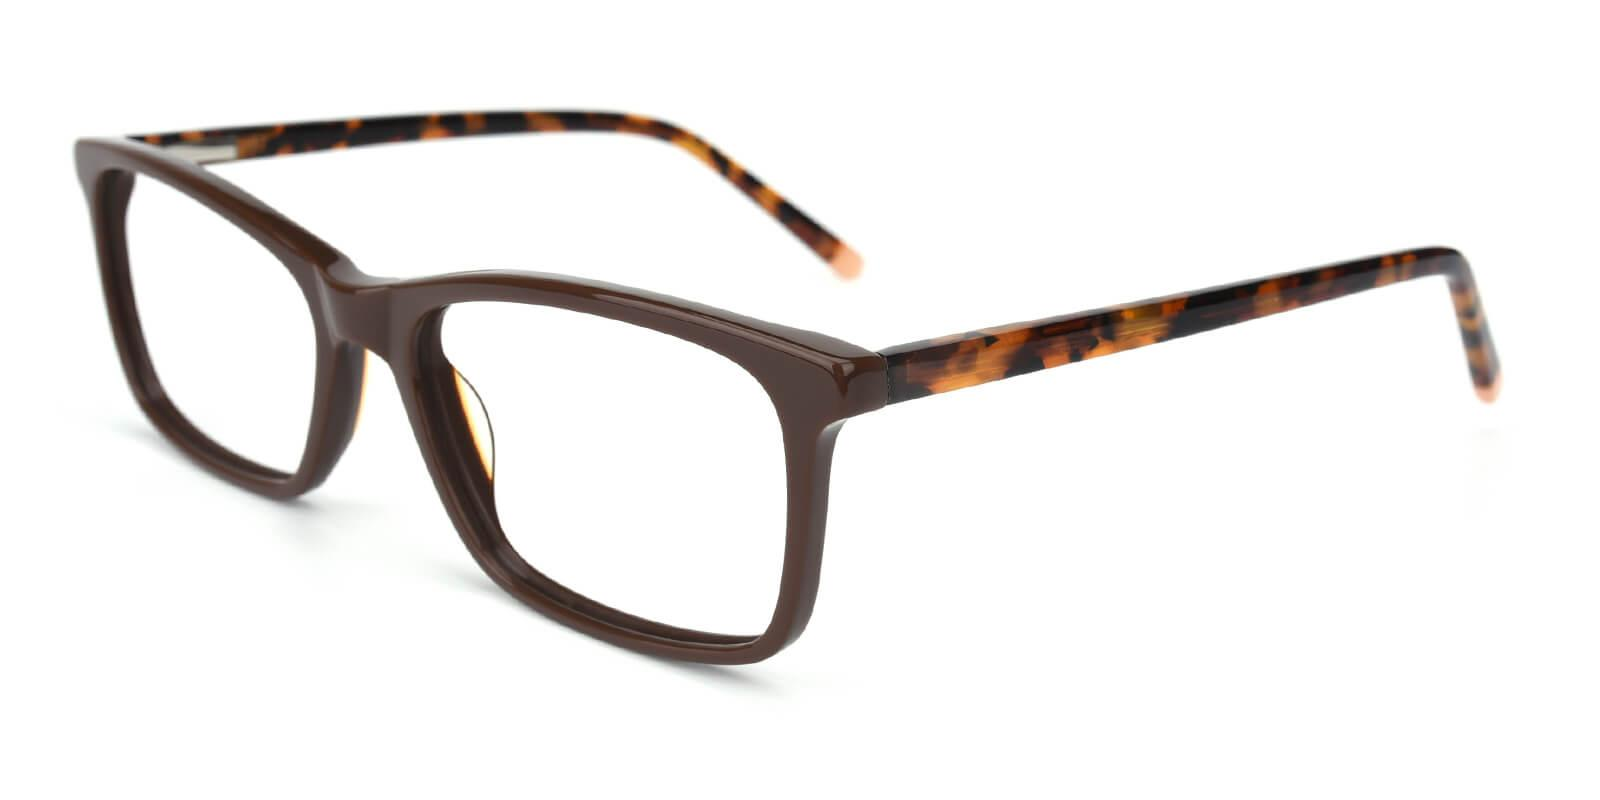 Crane-Brown-Rectangle-Acetate-Eyeglasses-additional1